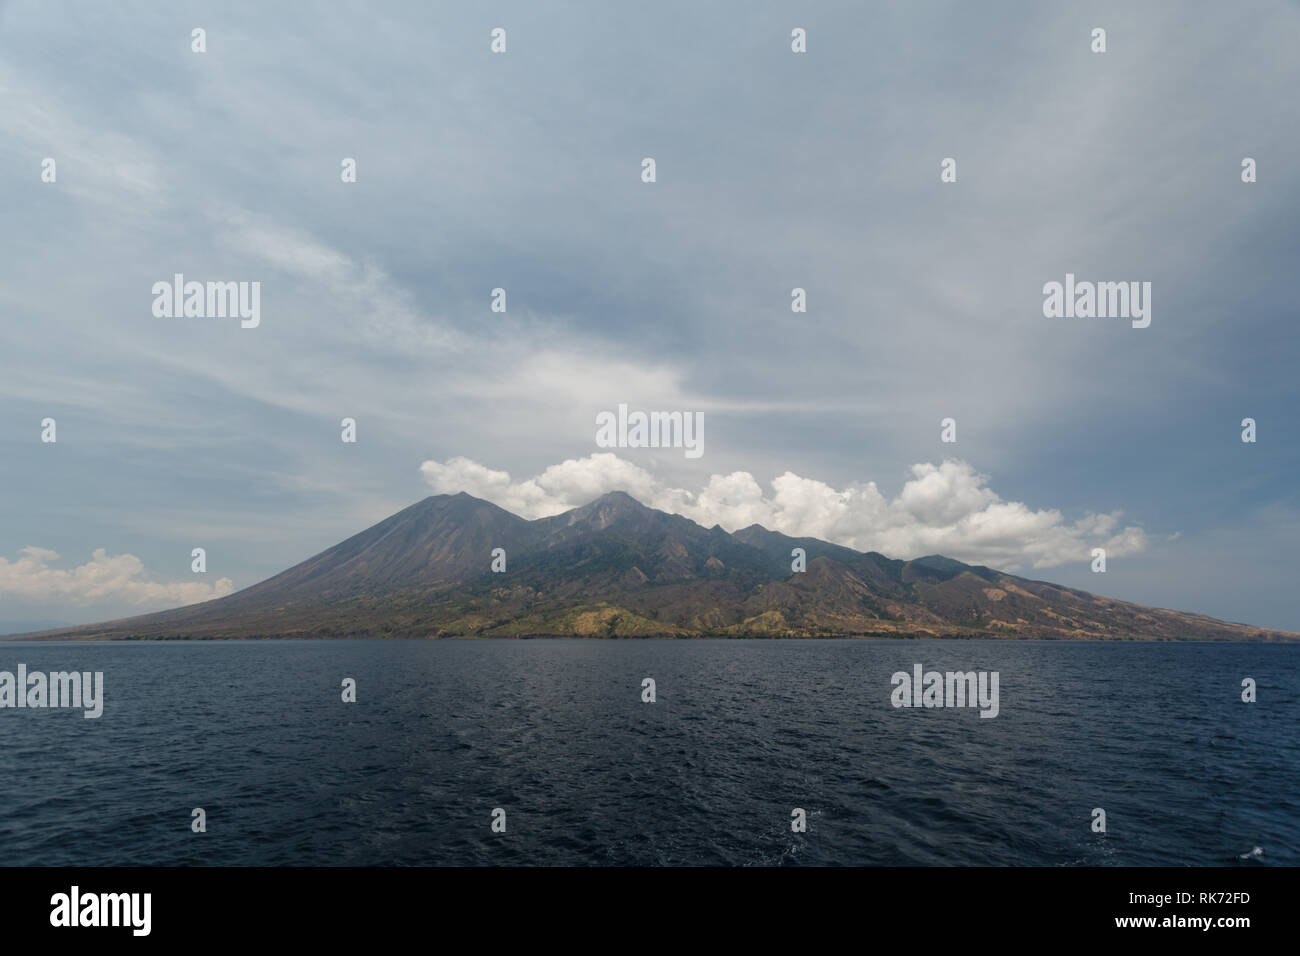 Ring of Fire island, Pulau Sangeang island  produces steam from its volcano - Stock Image